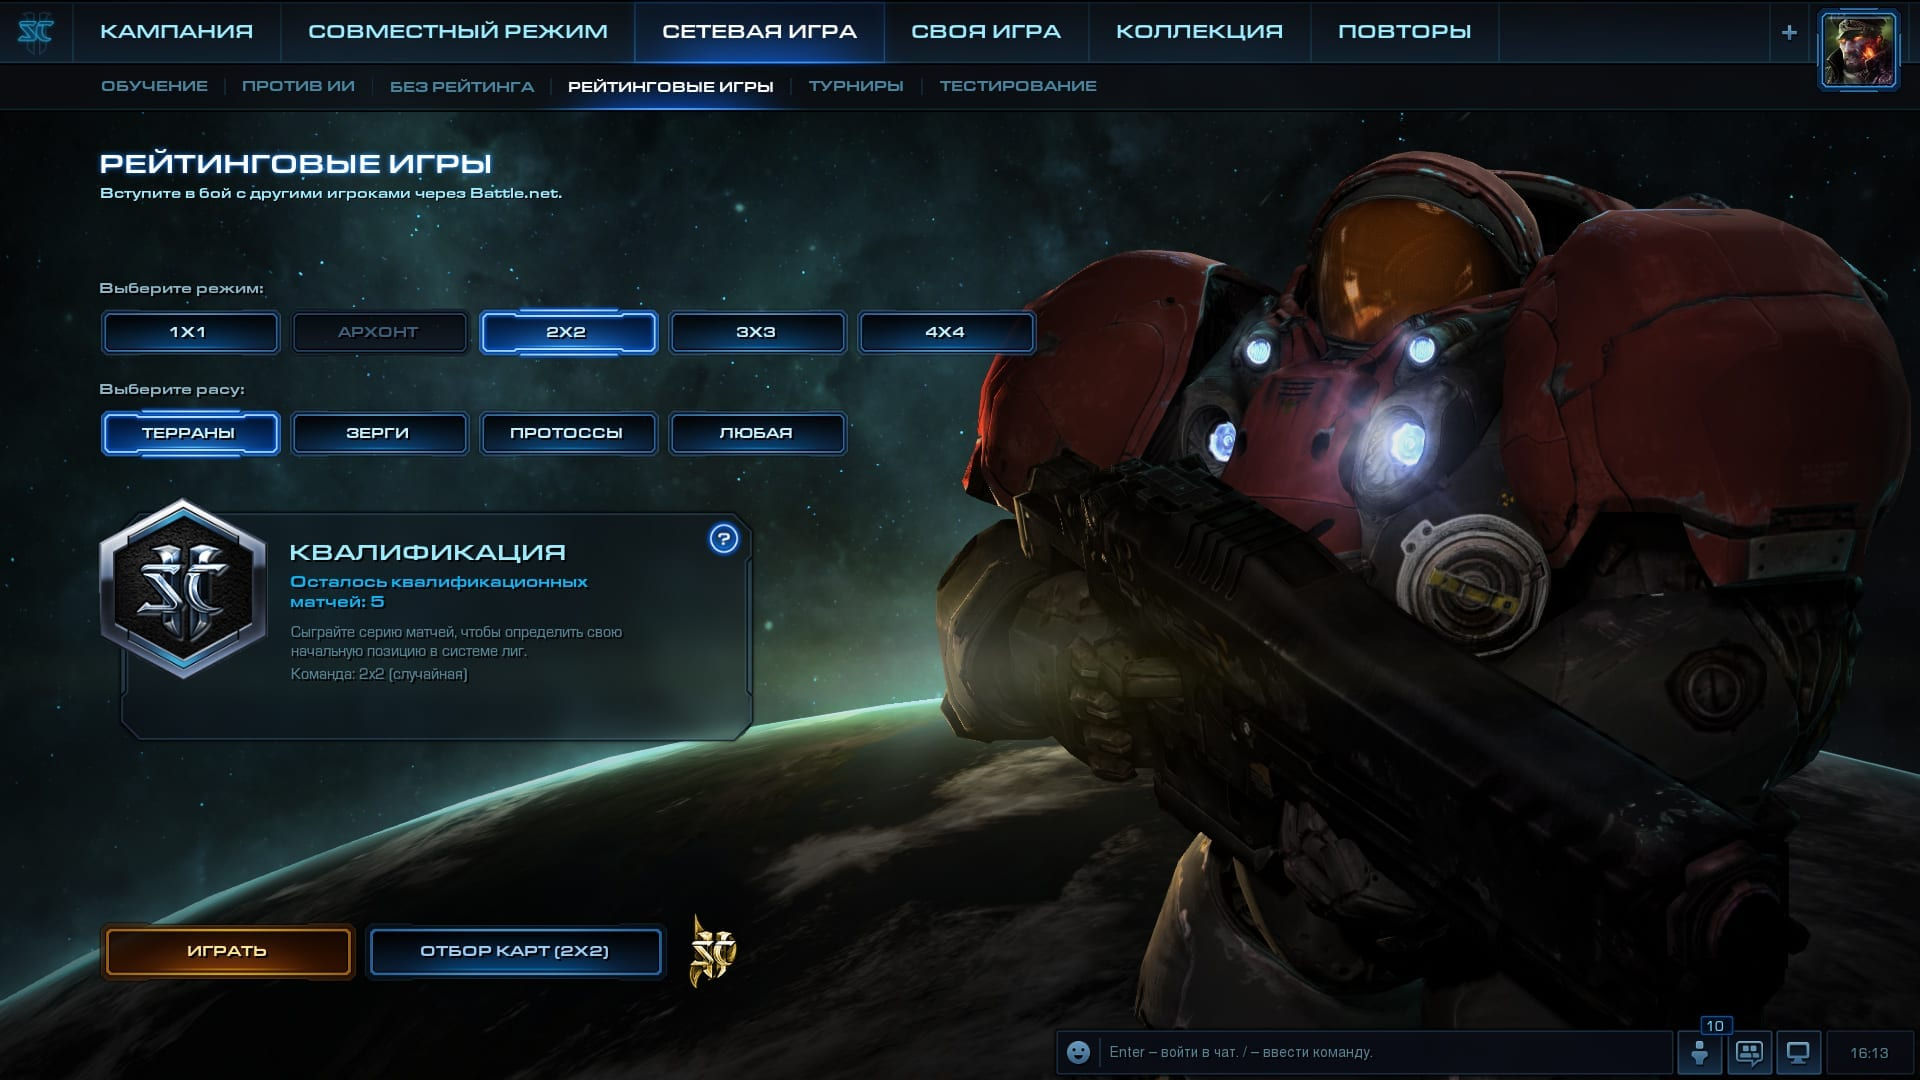 StarCraft 2 multiplayer